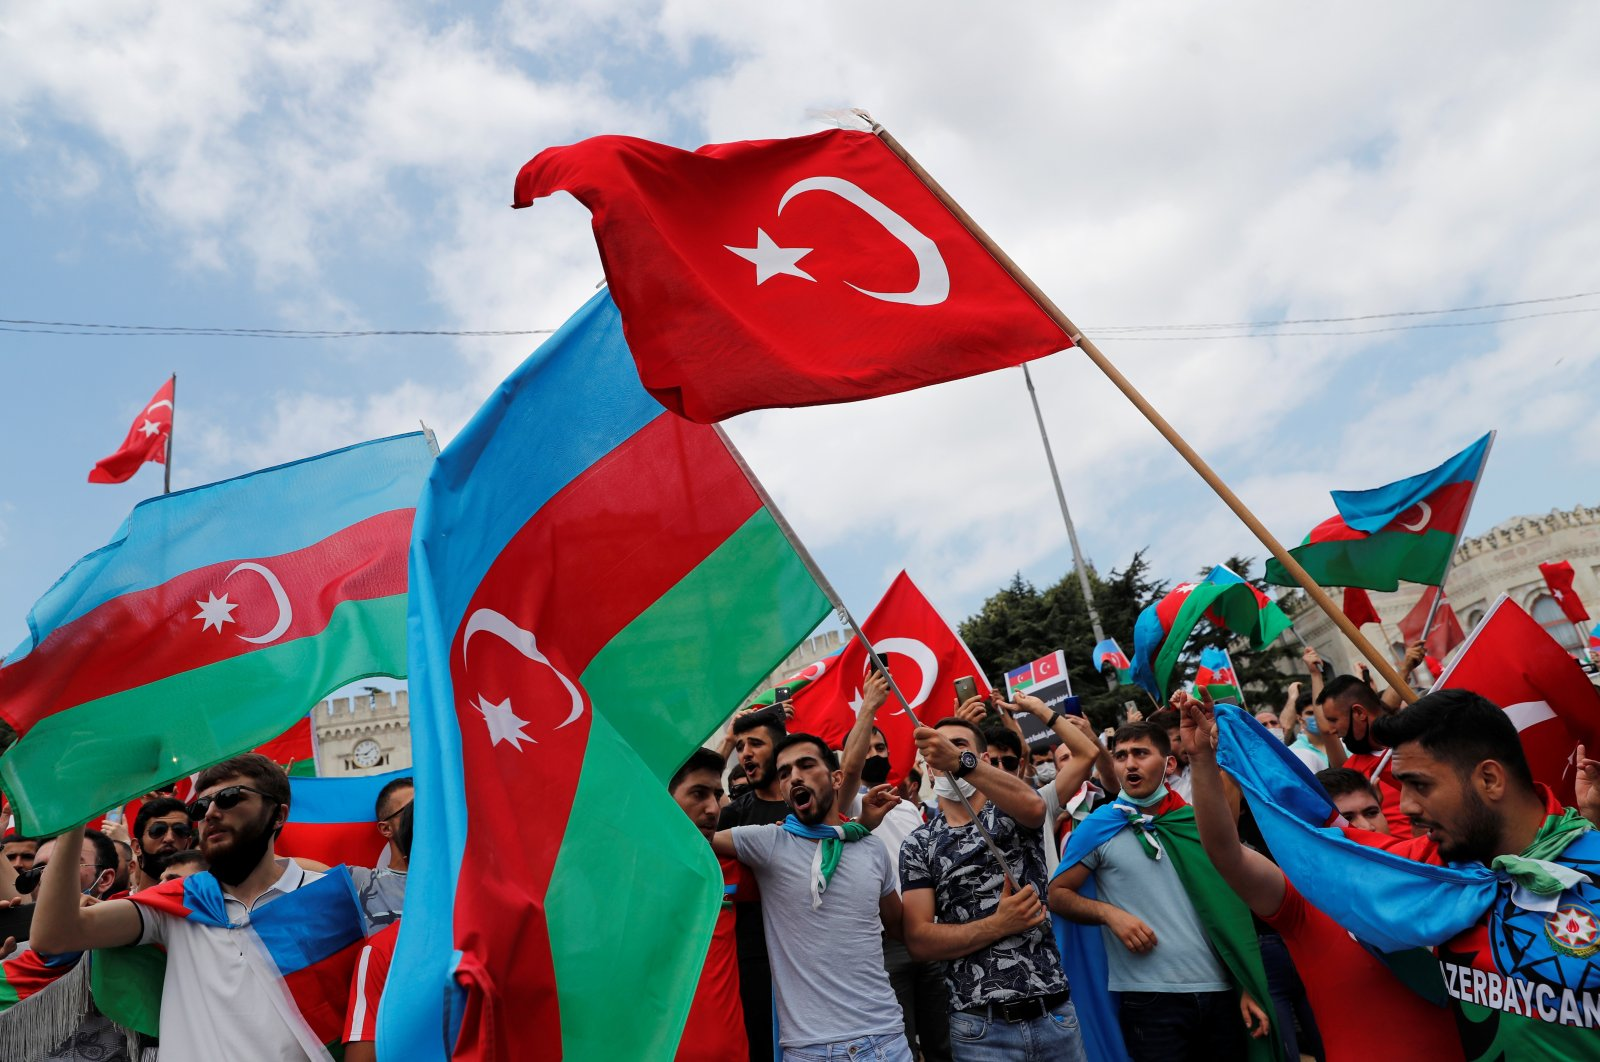 Azerbaijani men living in Turkey wave flags of Turkey and Azerbaijan during a protest following clashes between Azerbaijan and Armenia, in Istanbul, July 19, 2020. (Reuters Photo)